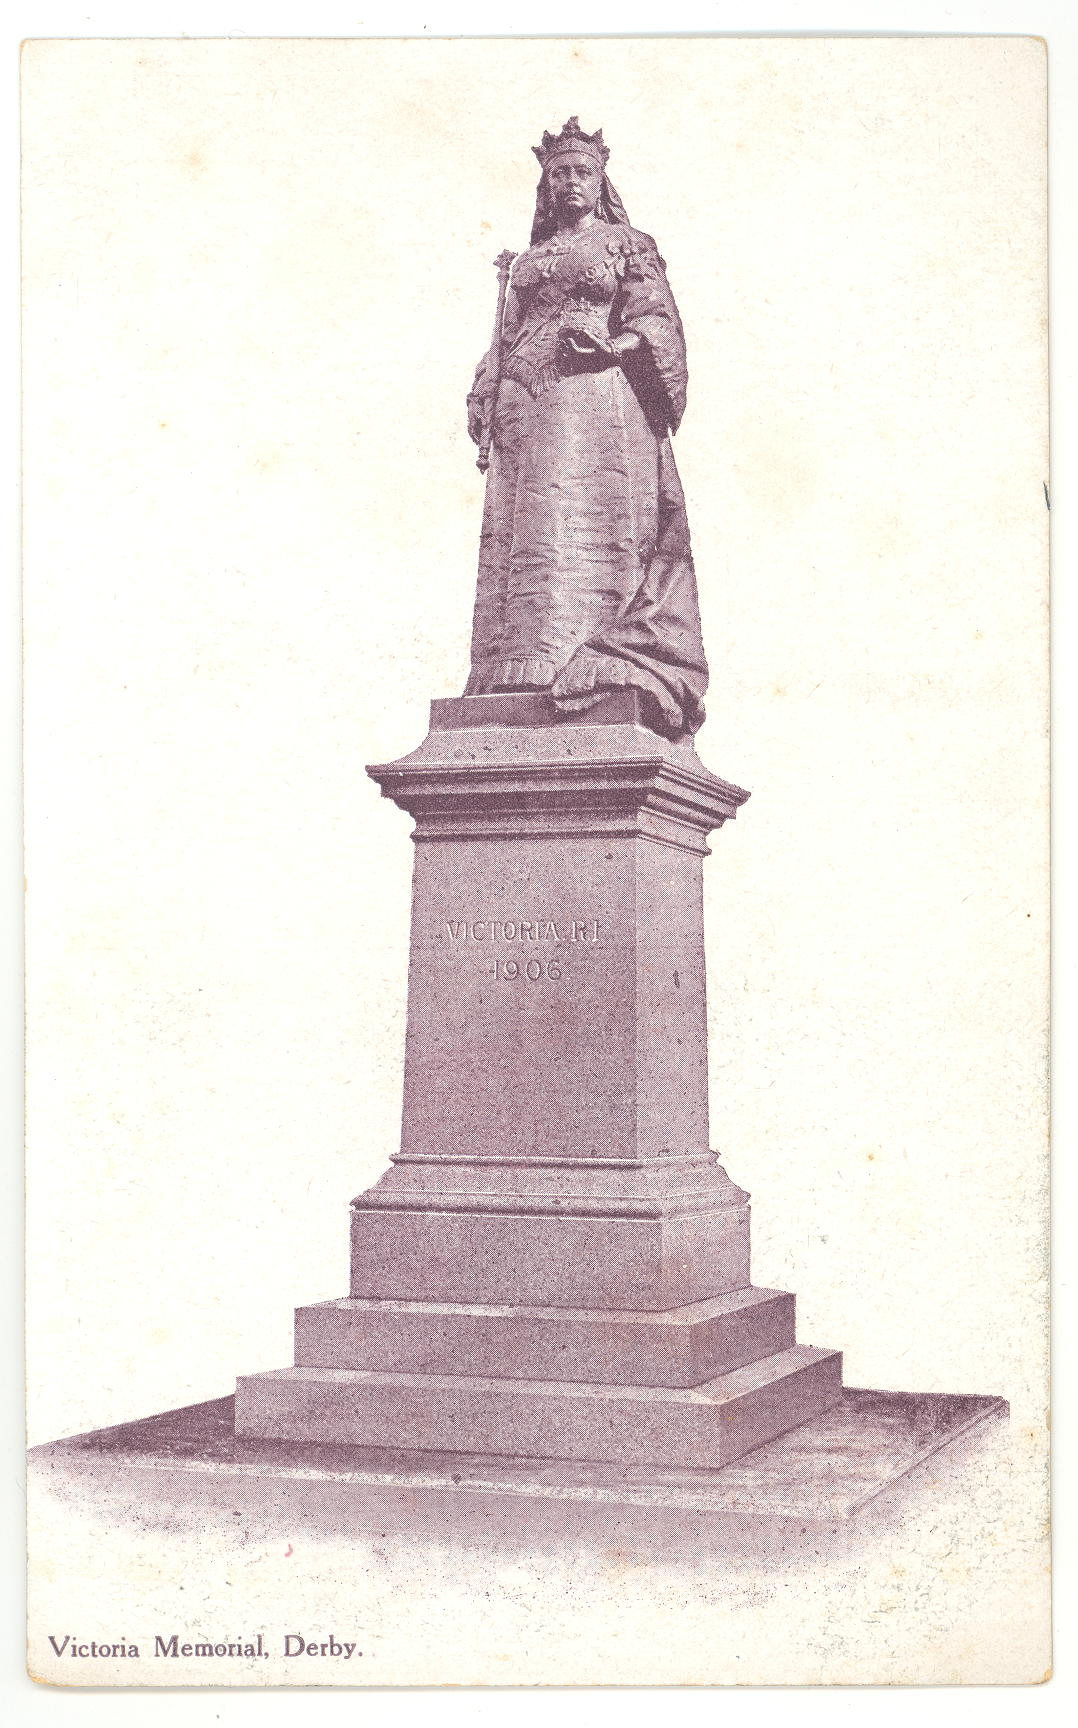 Sepia portrait postcard entitled Victoria Memorial, Derby. Queen Victoria with crown, orb and sceptre is standing on a stepped stone plinth with the text Victoria RI 1906. The memorial is thought to have been cast at the Thames Ditton Bronze Foundry.